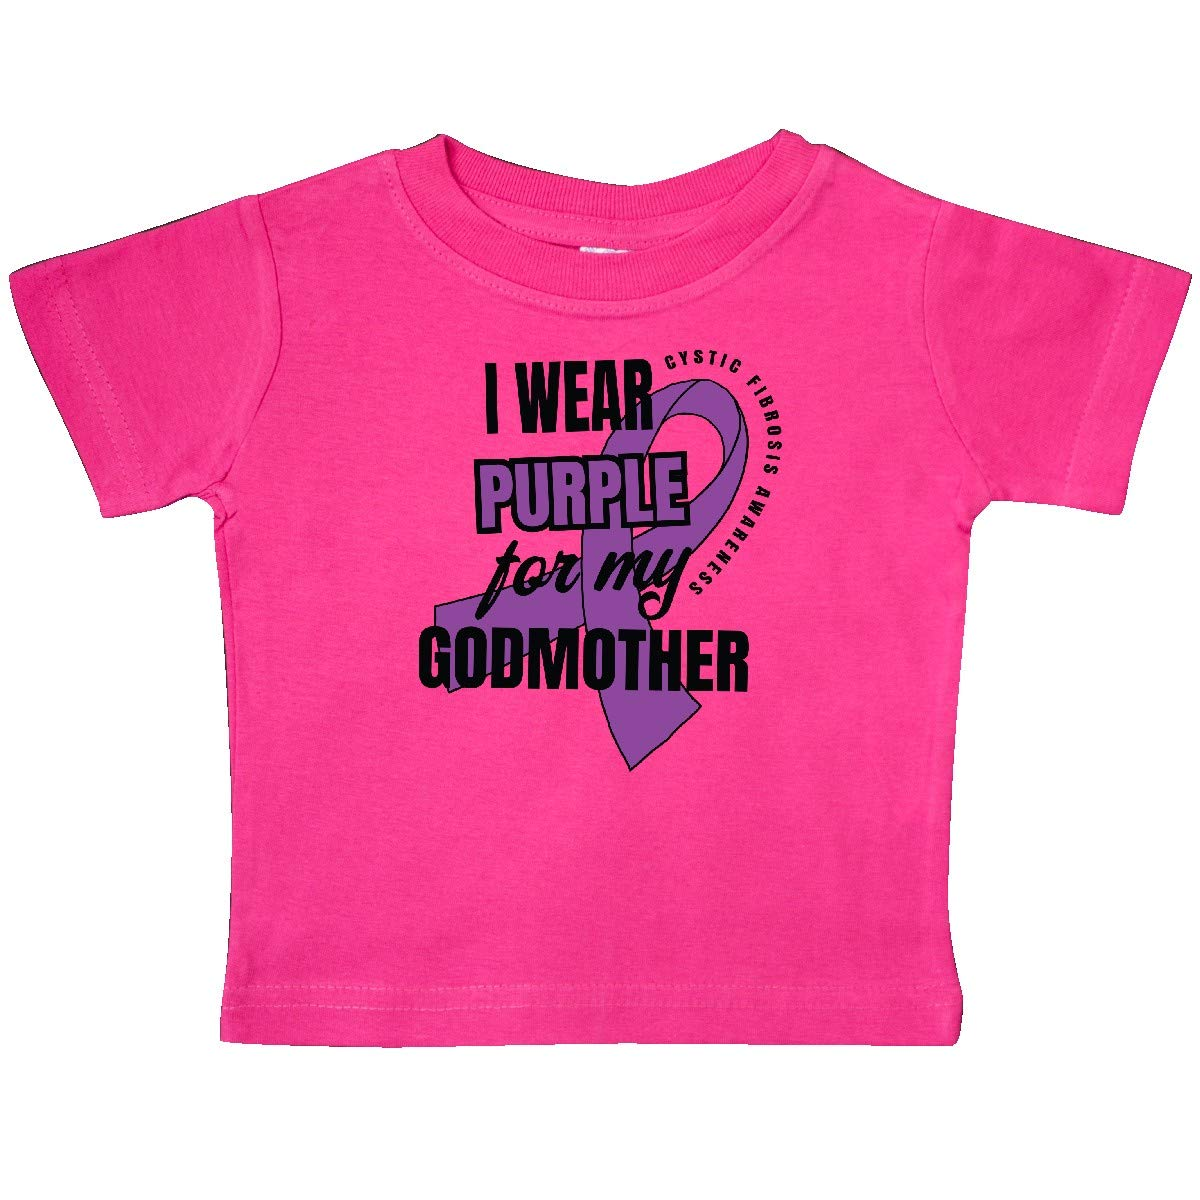 inktastic I Wear Purple for My Godmother Cystic Fibrosis Awareness Baby T-Shirt